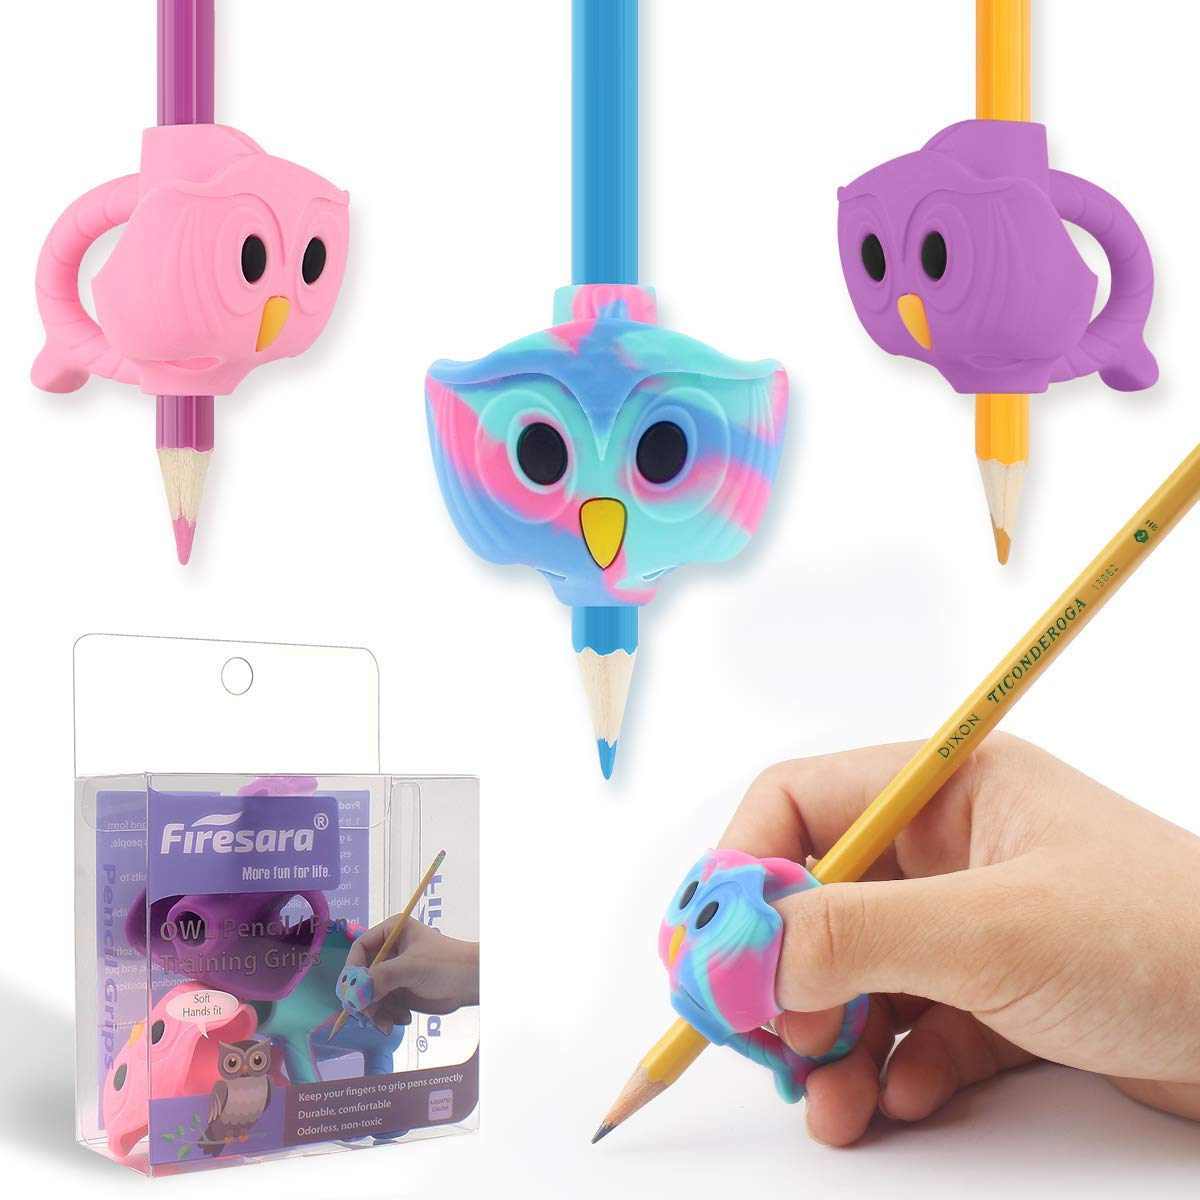 Pencil Grips, Firesara Original Owl Pencil Grips for Kids Handwriting Ergonomic 3 Fingers Sets Aid for Trainer Handwriting Posture Correction,Assorted Pencil Grip for Righties and Lefties (3pcs)